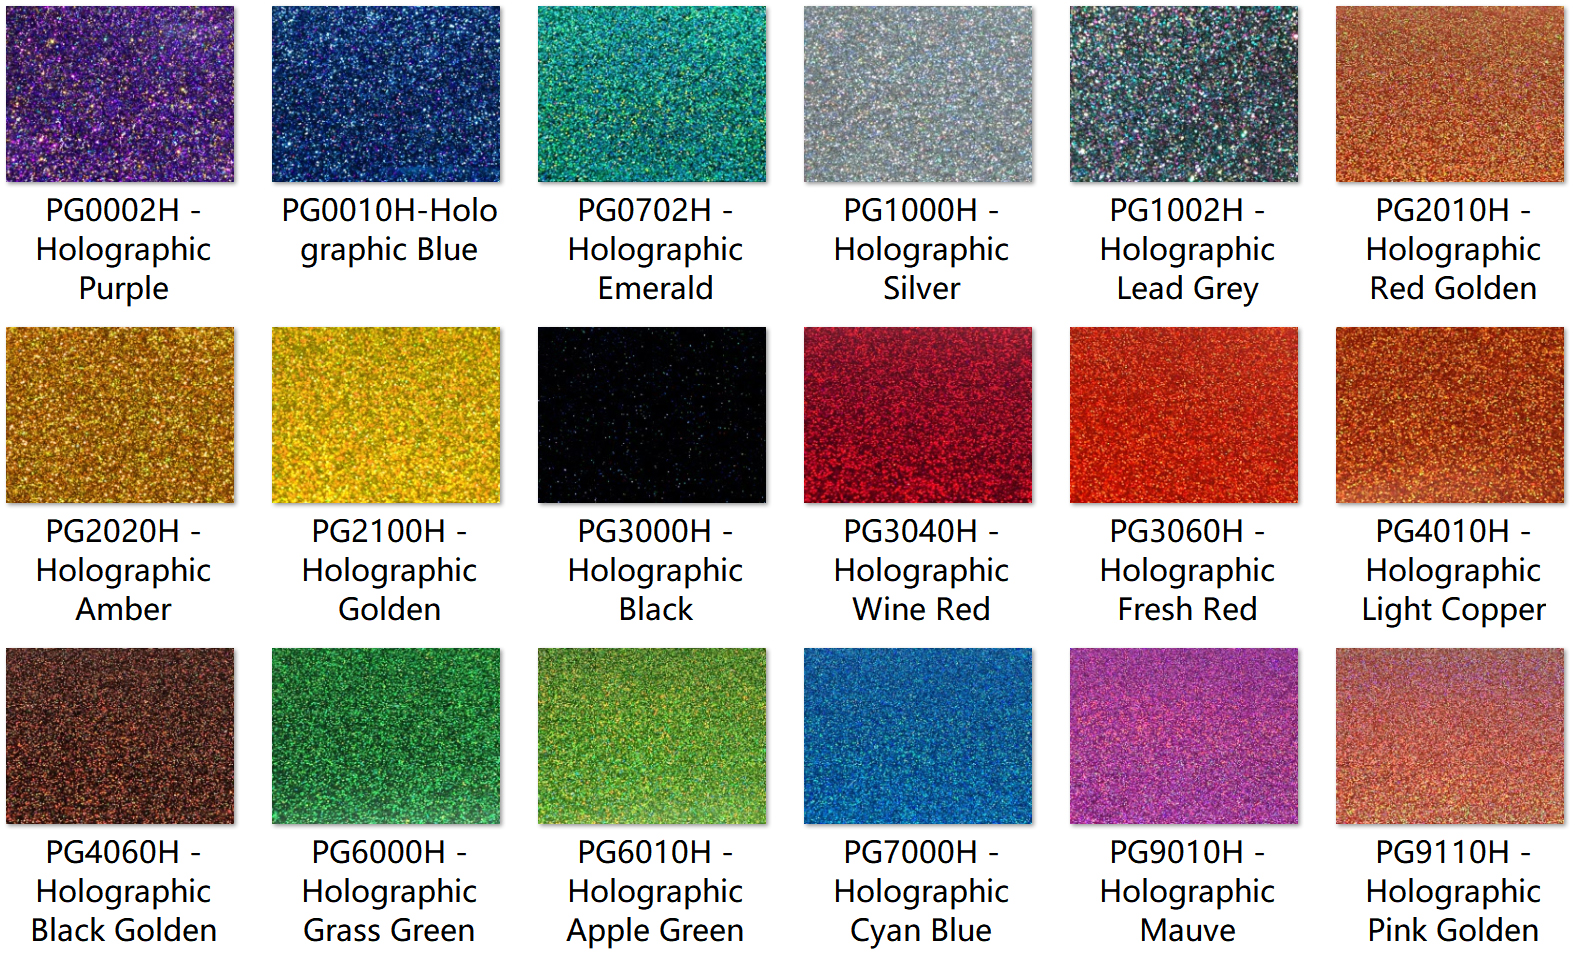 300mm x 300mm x 3.0mm (L x W x T), Multi Colors Acrylic (PMMA) Two Sided Holographic Glittering Sheets   8 pcs/lot-in Plaques & Signs from Home & Garden    1